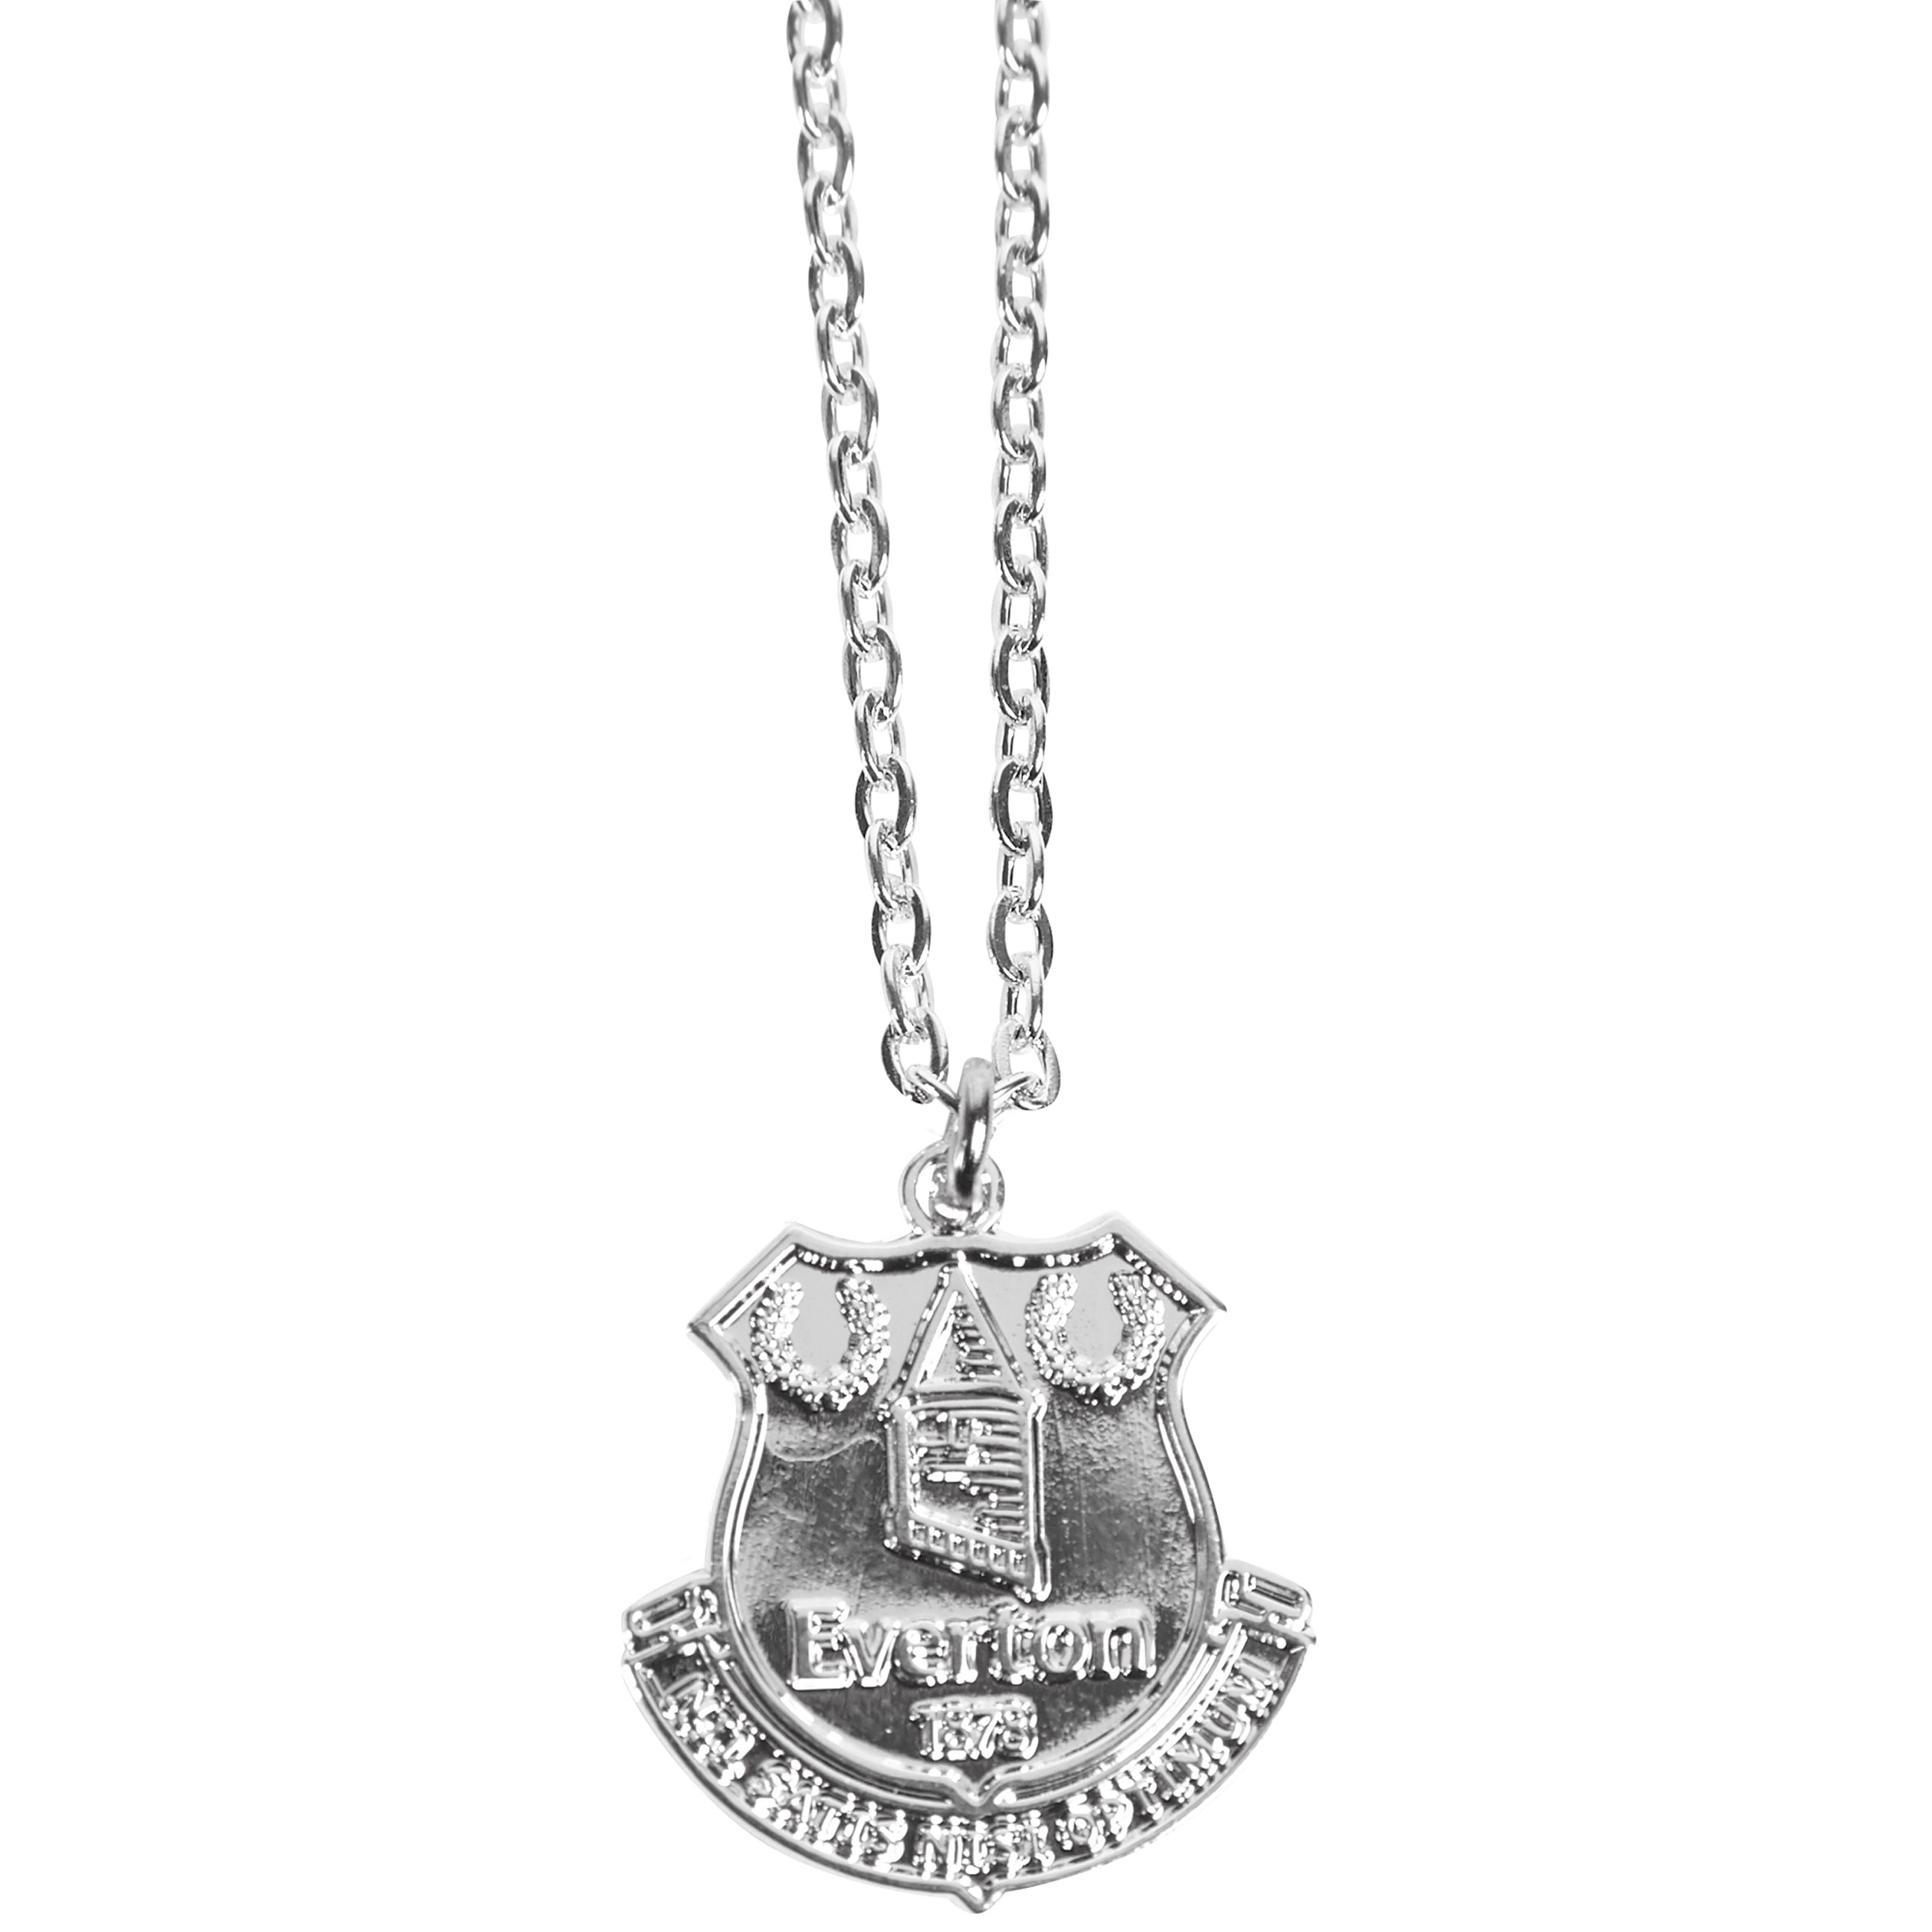 Everton Crest Pendant and Chain